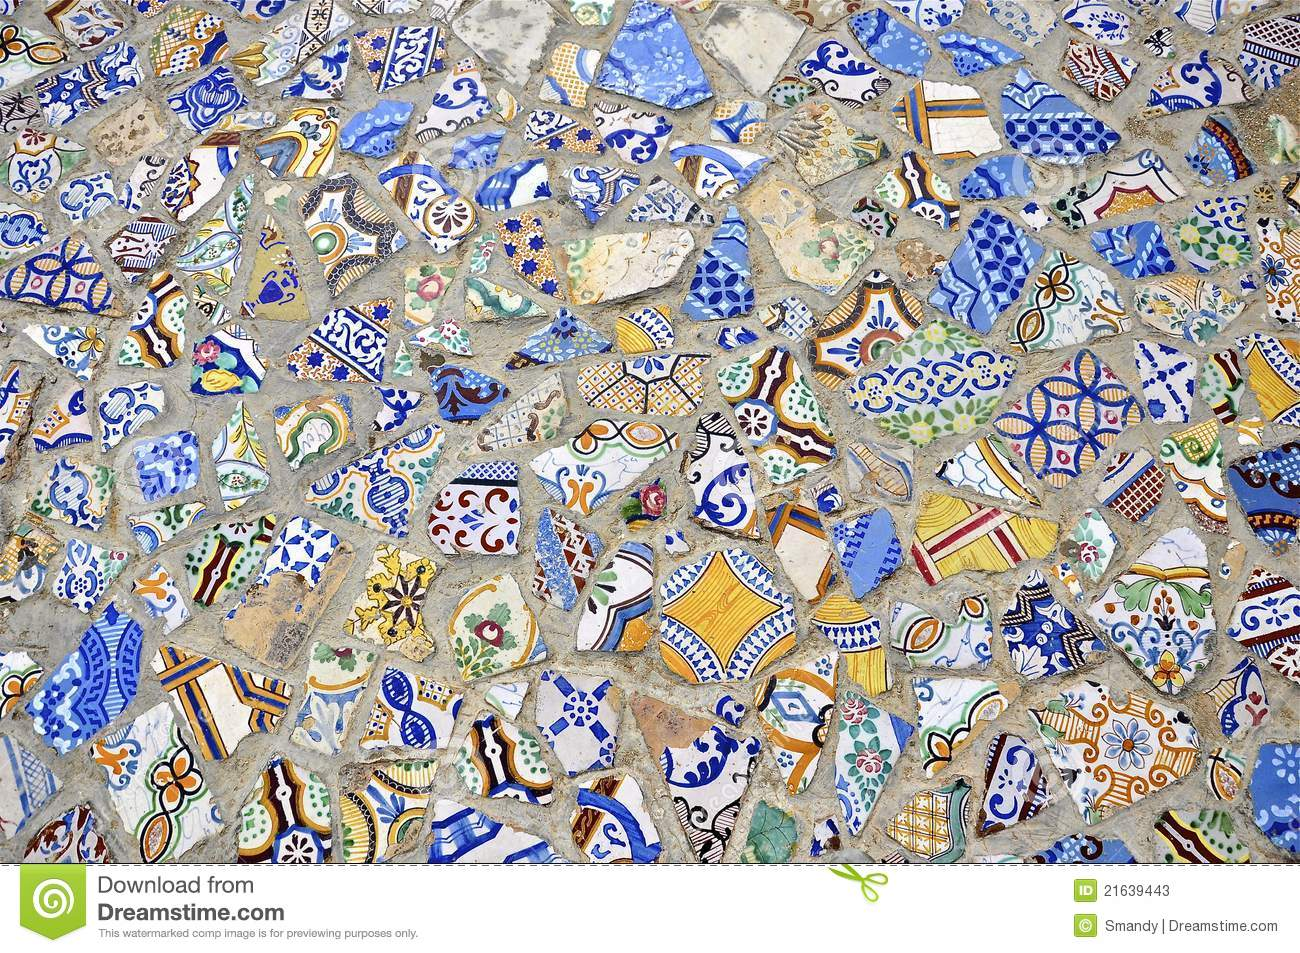 Mosaic Tiles Floor Design Stock Photos - Image: 21639443